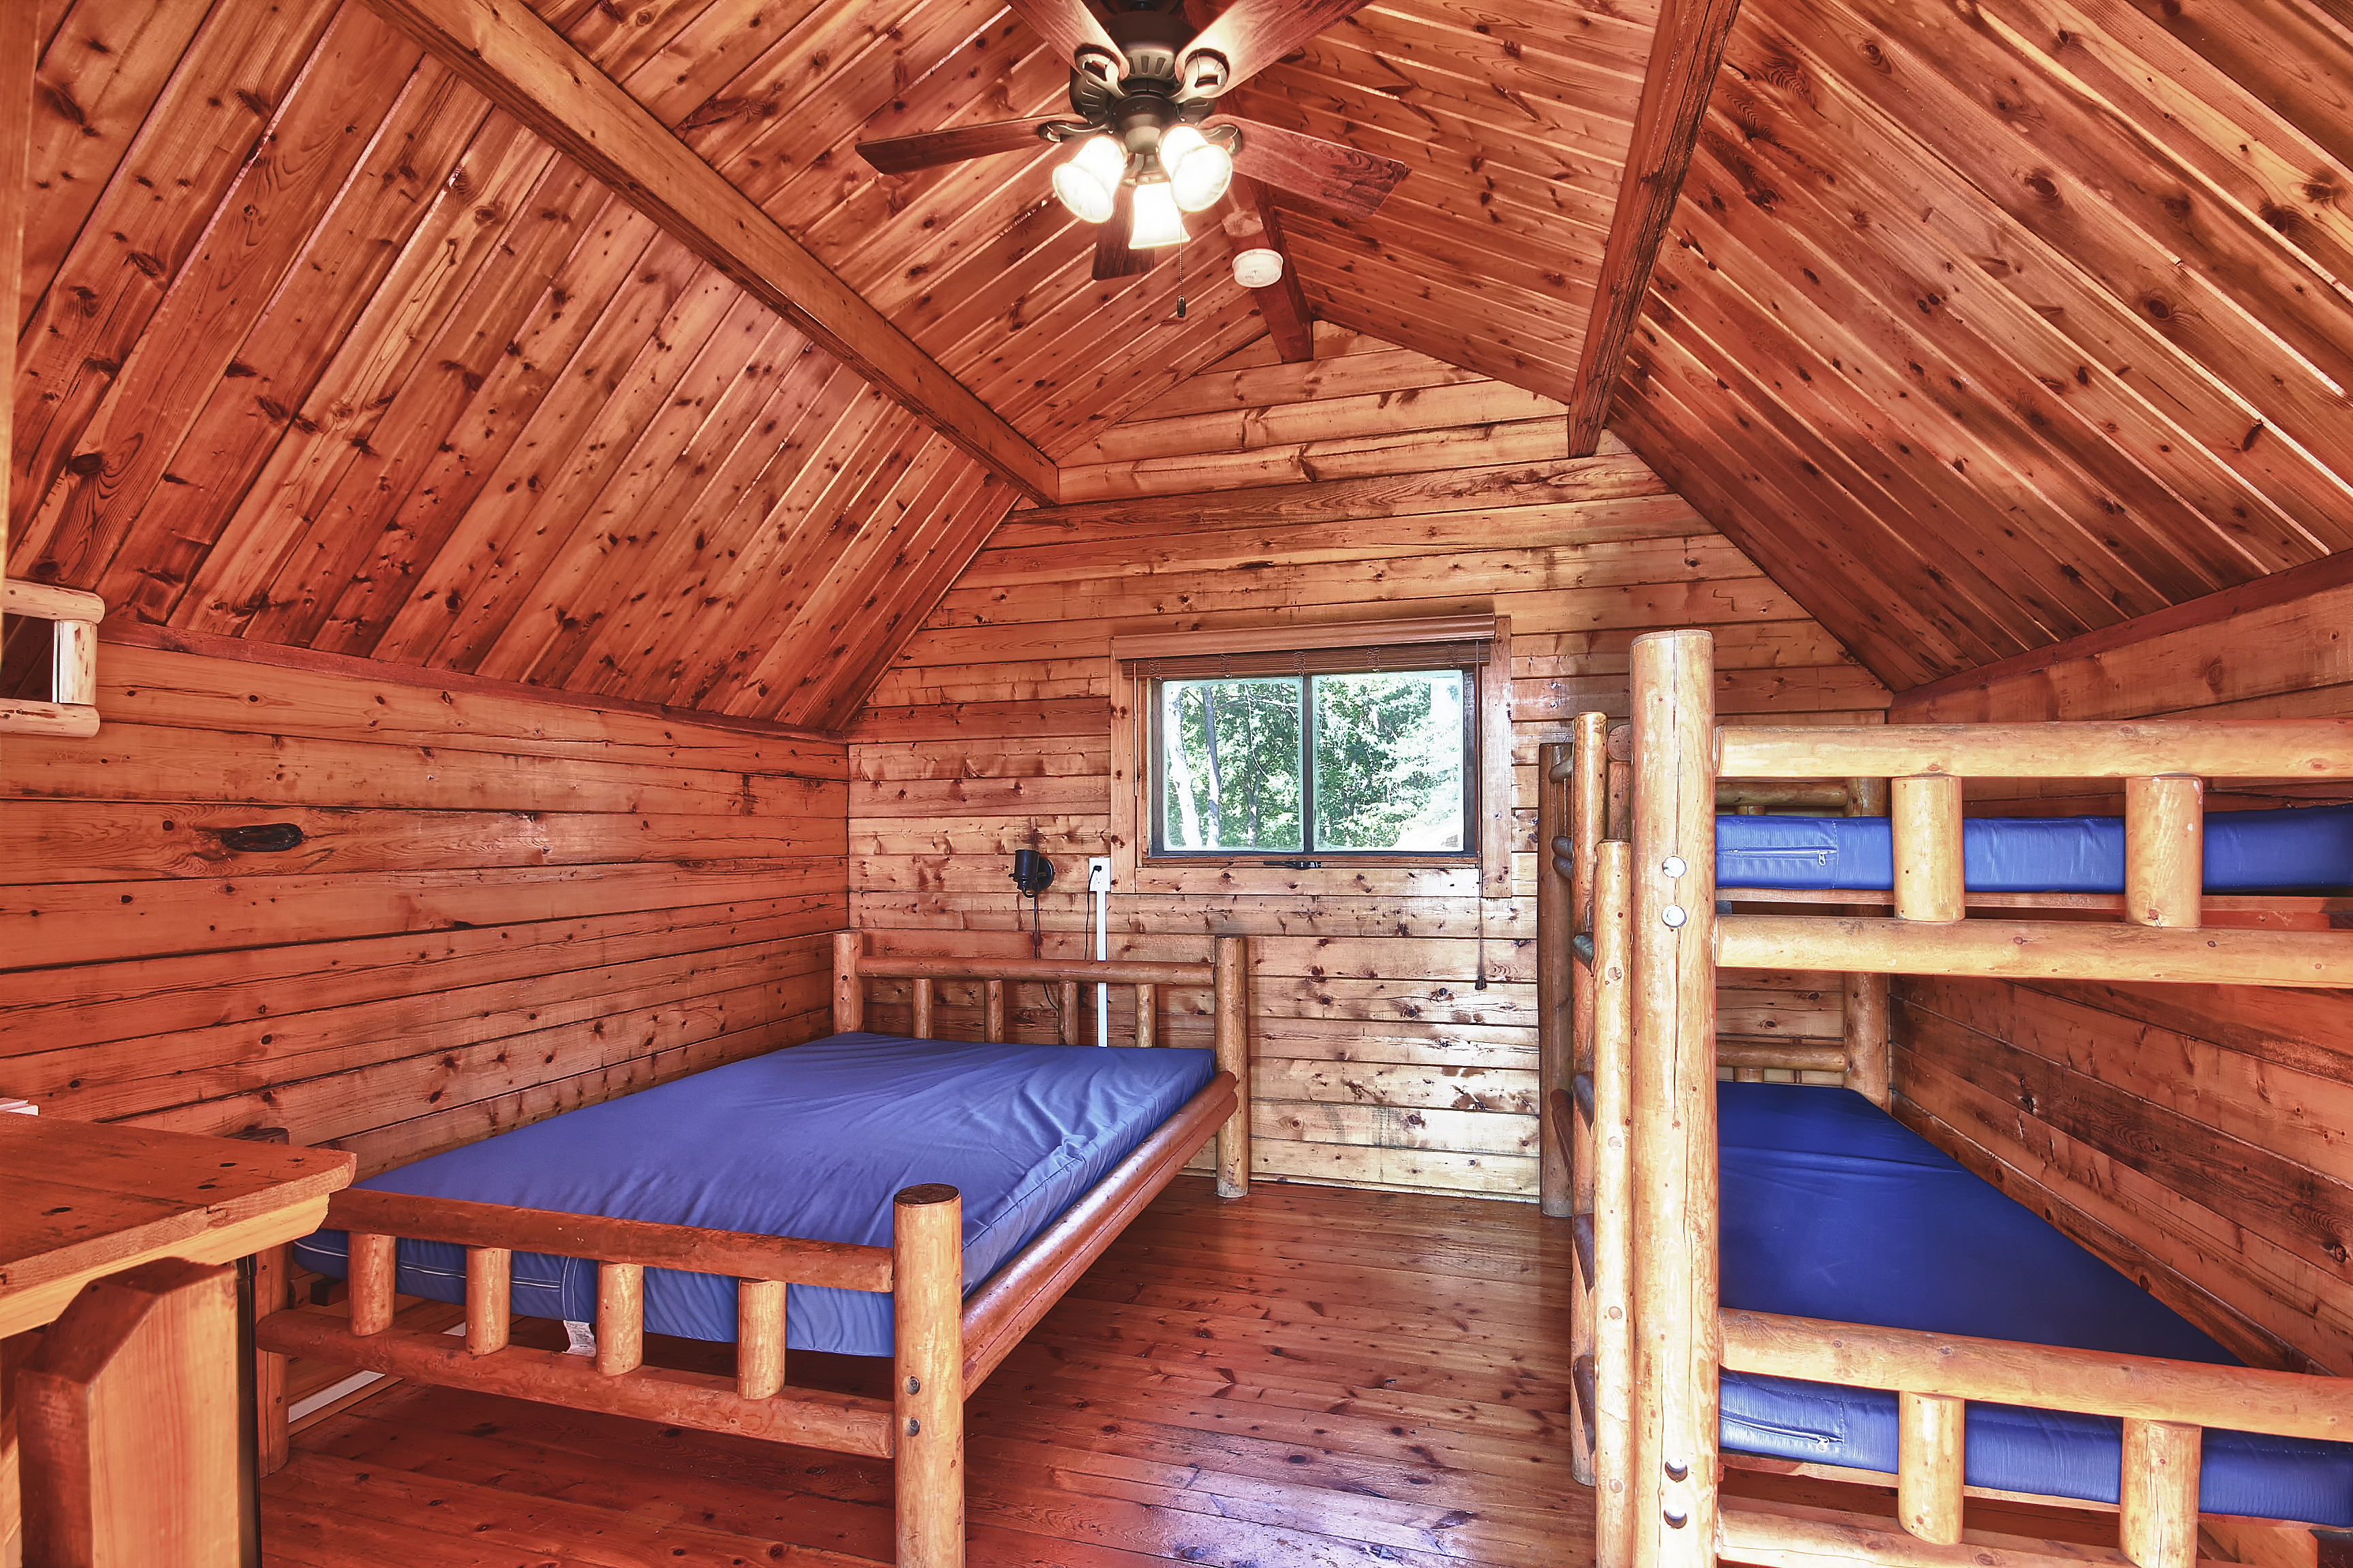 hocking hockg getaway fd cabins dplays in getaways pool with romantic ohio reviews hills